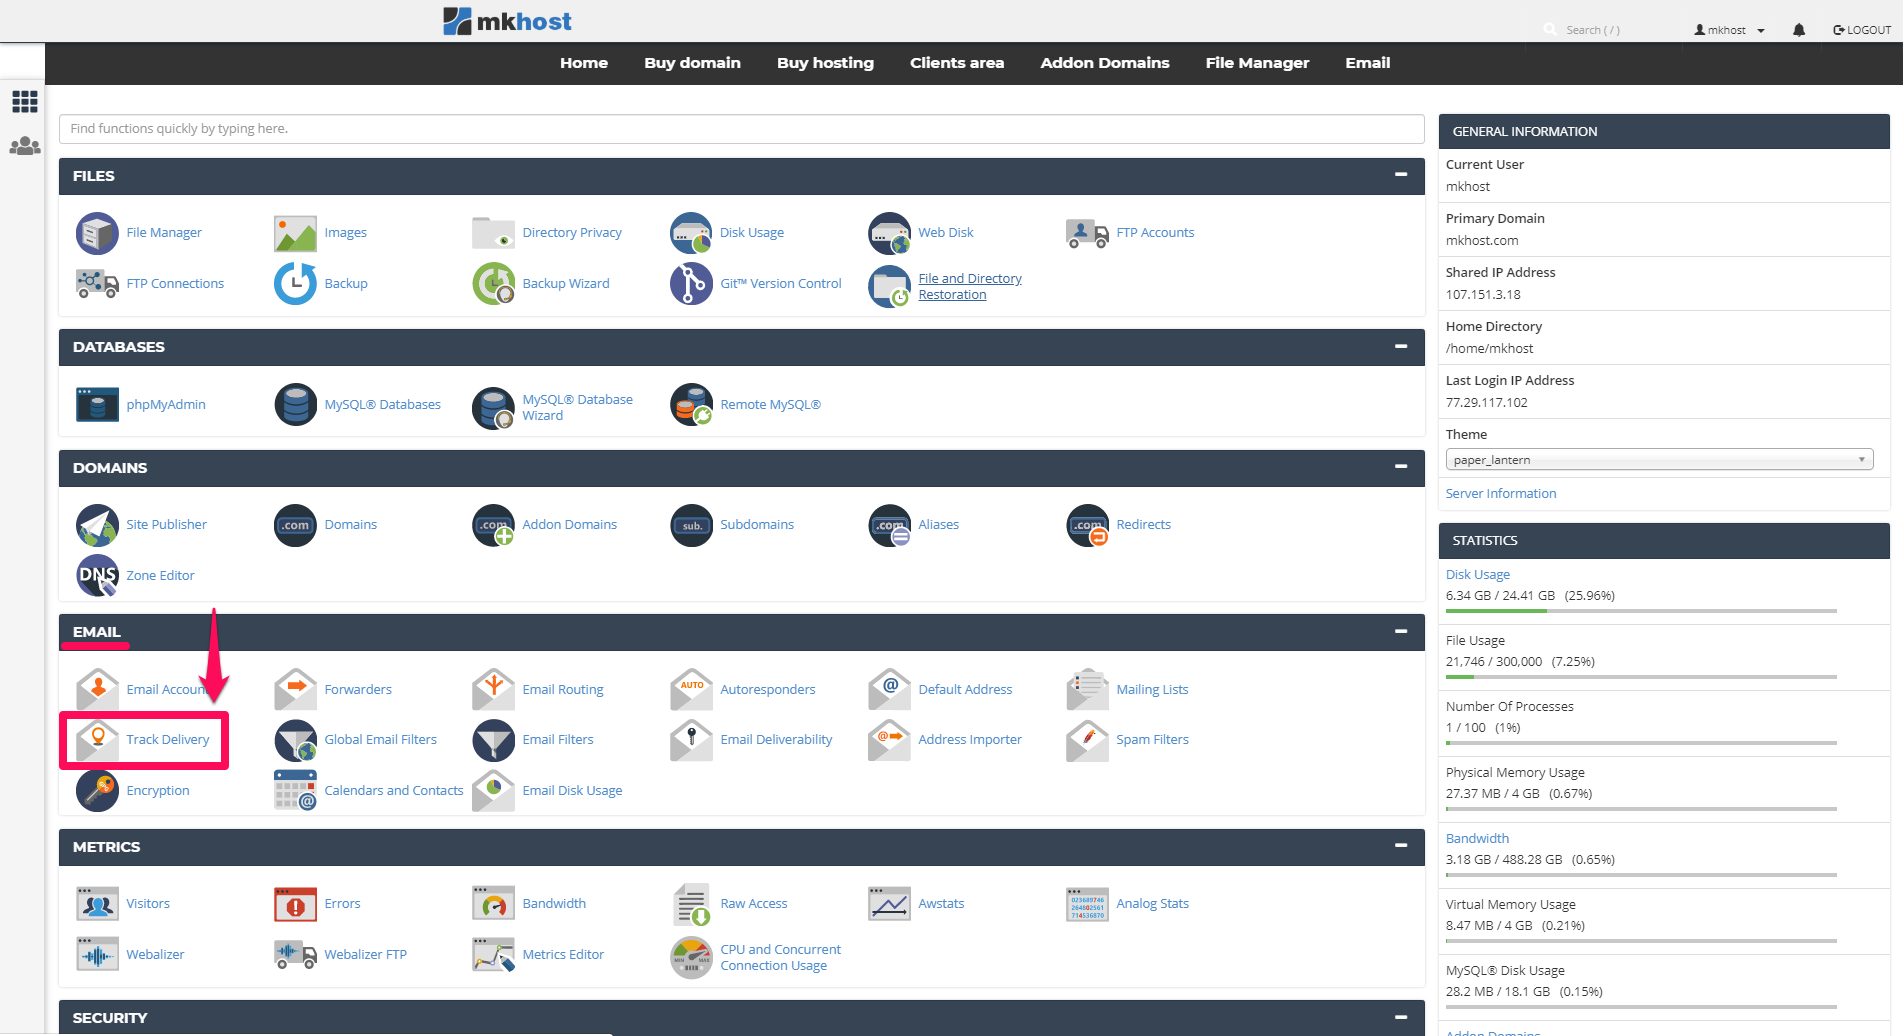 cpanel track delivery